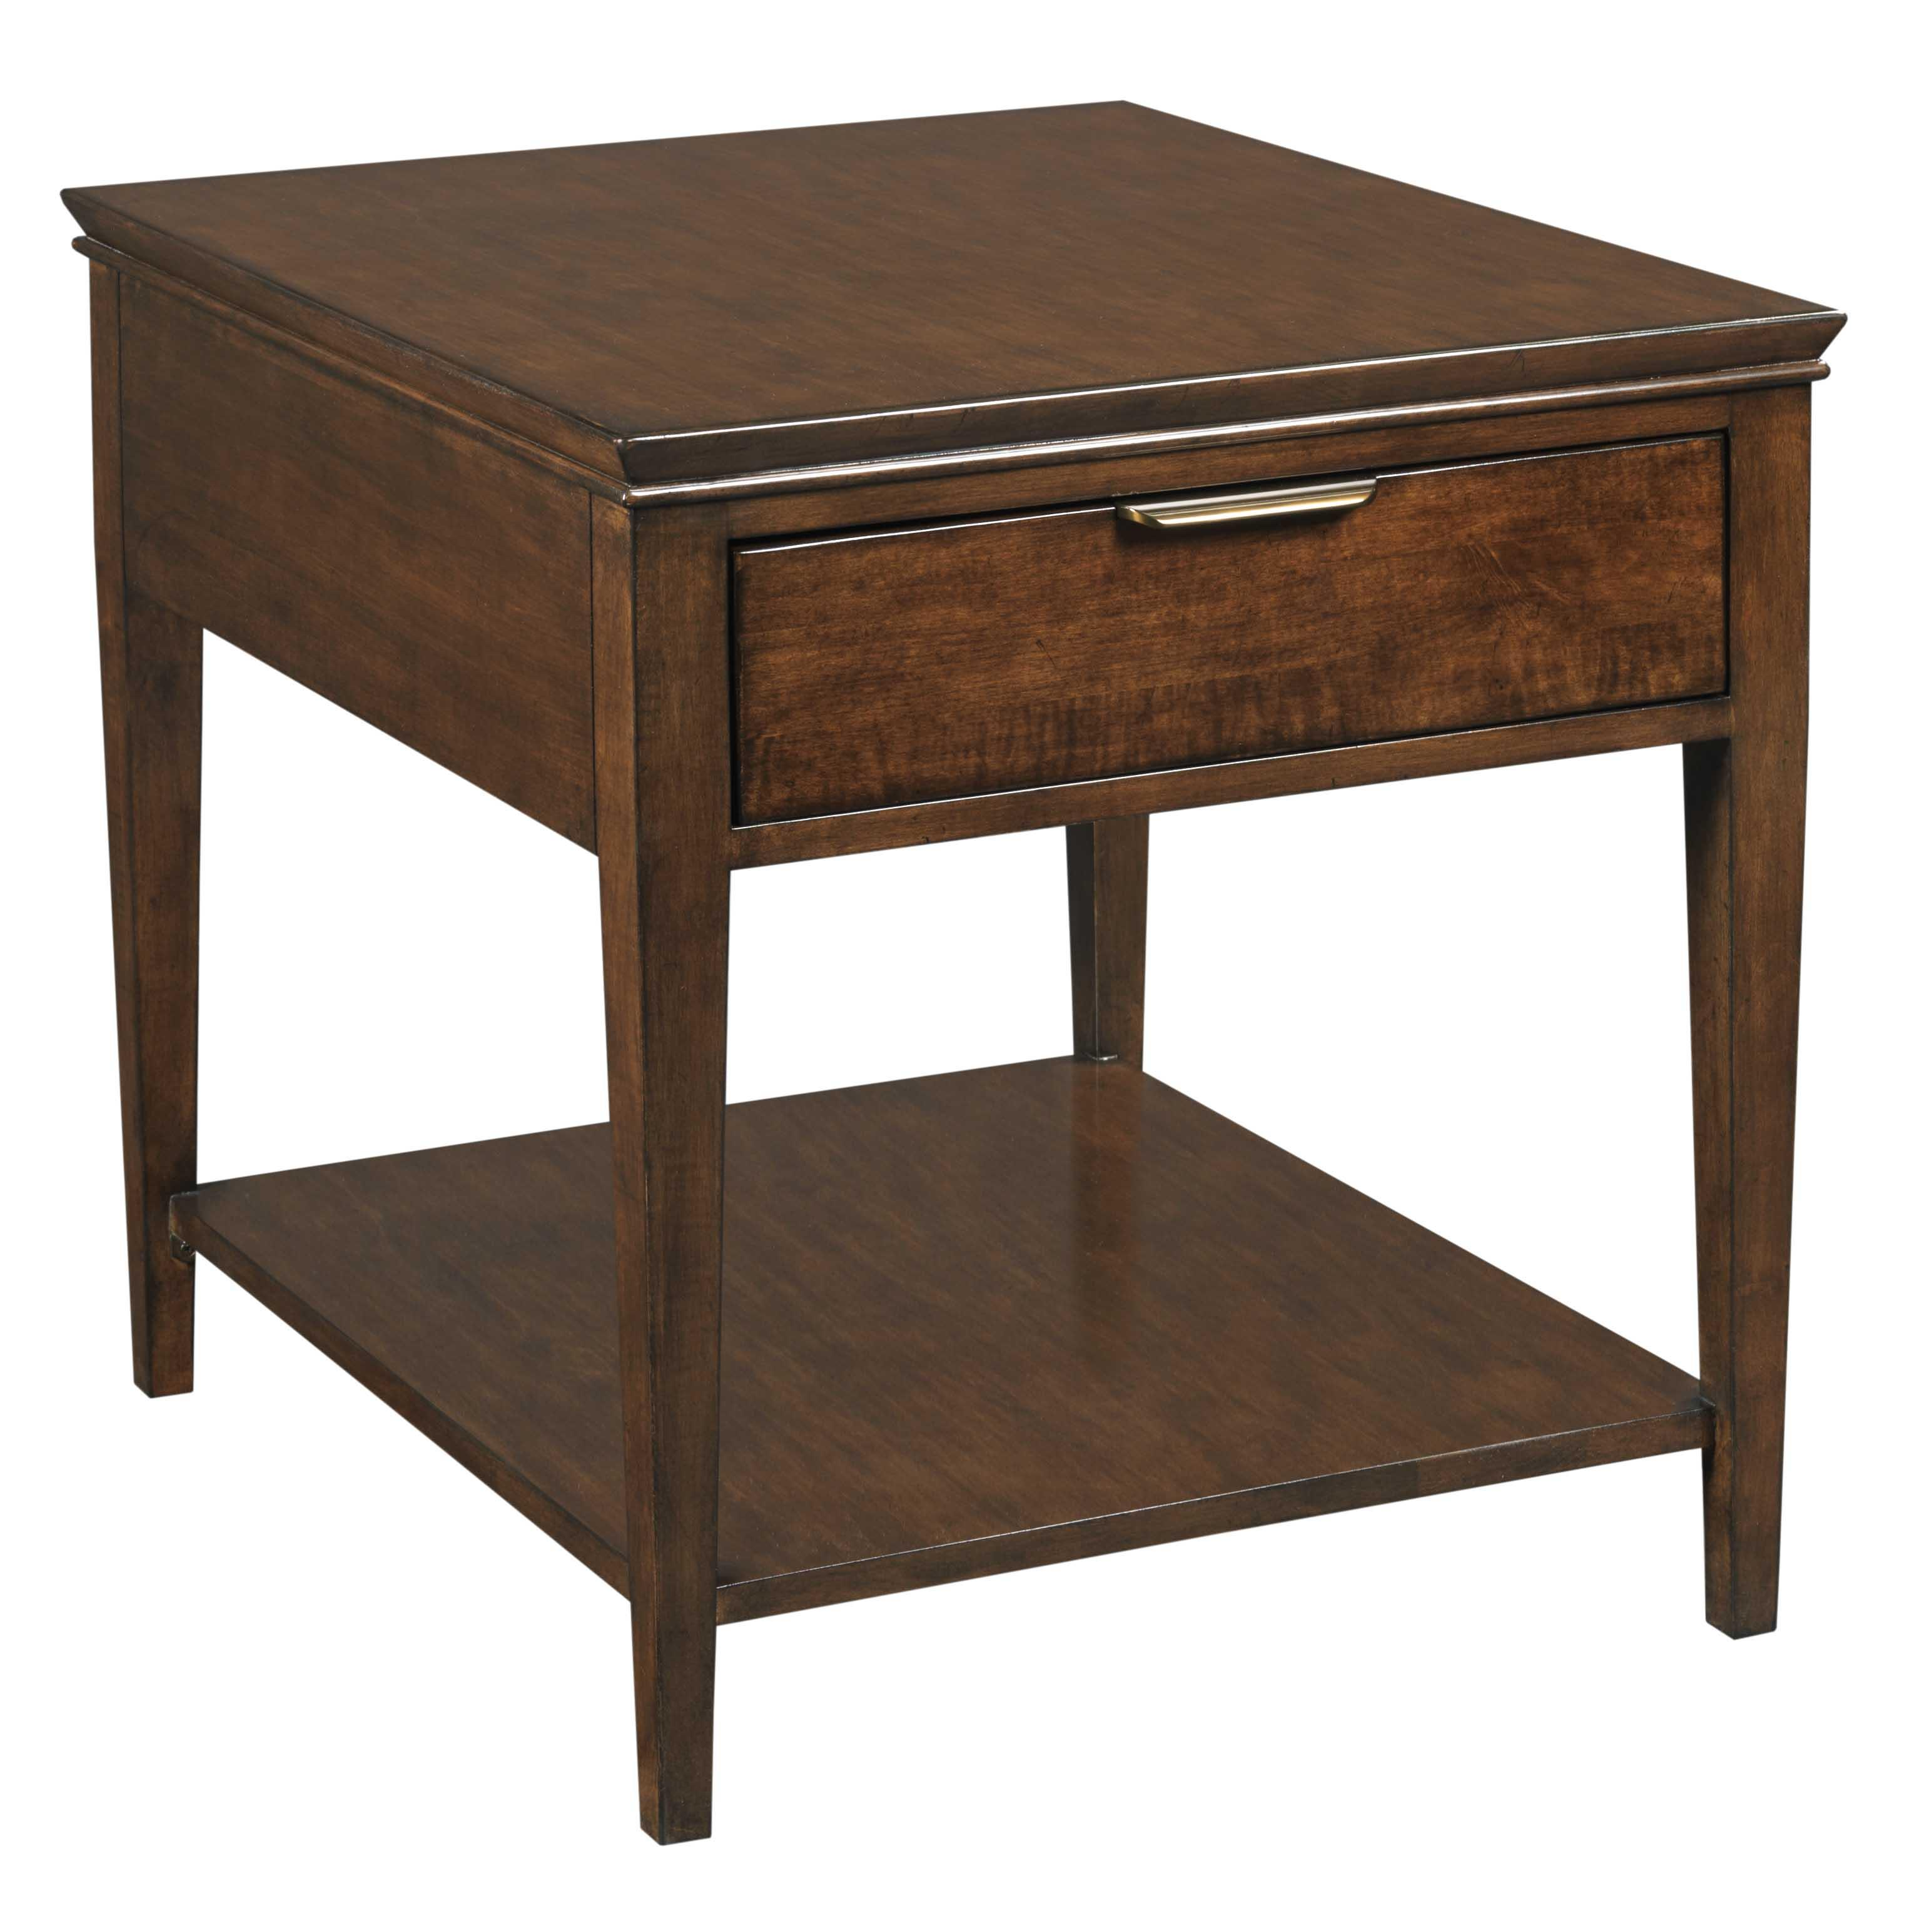 Exceptional Transitional Elise End Table With One Drawer